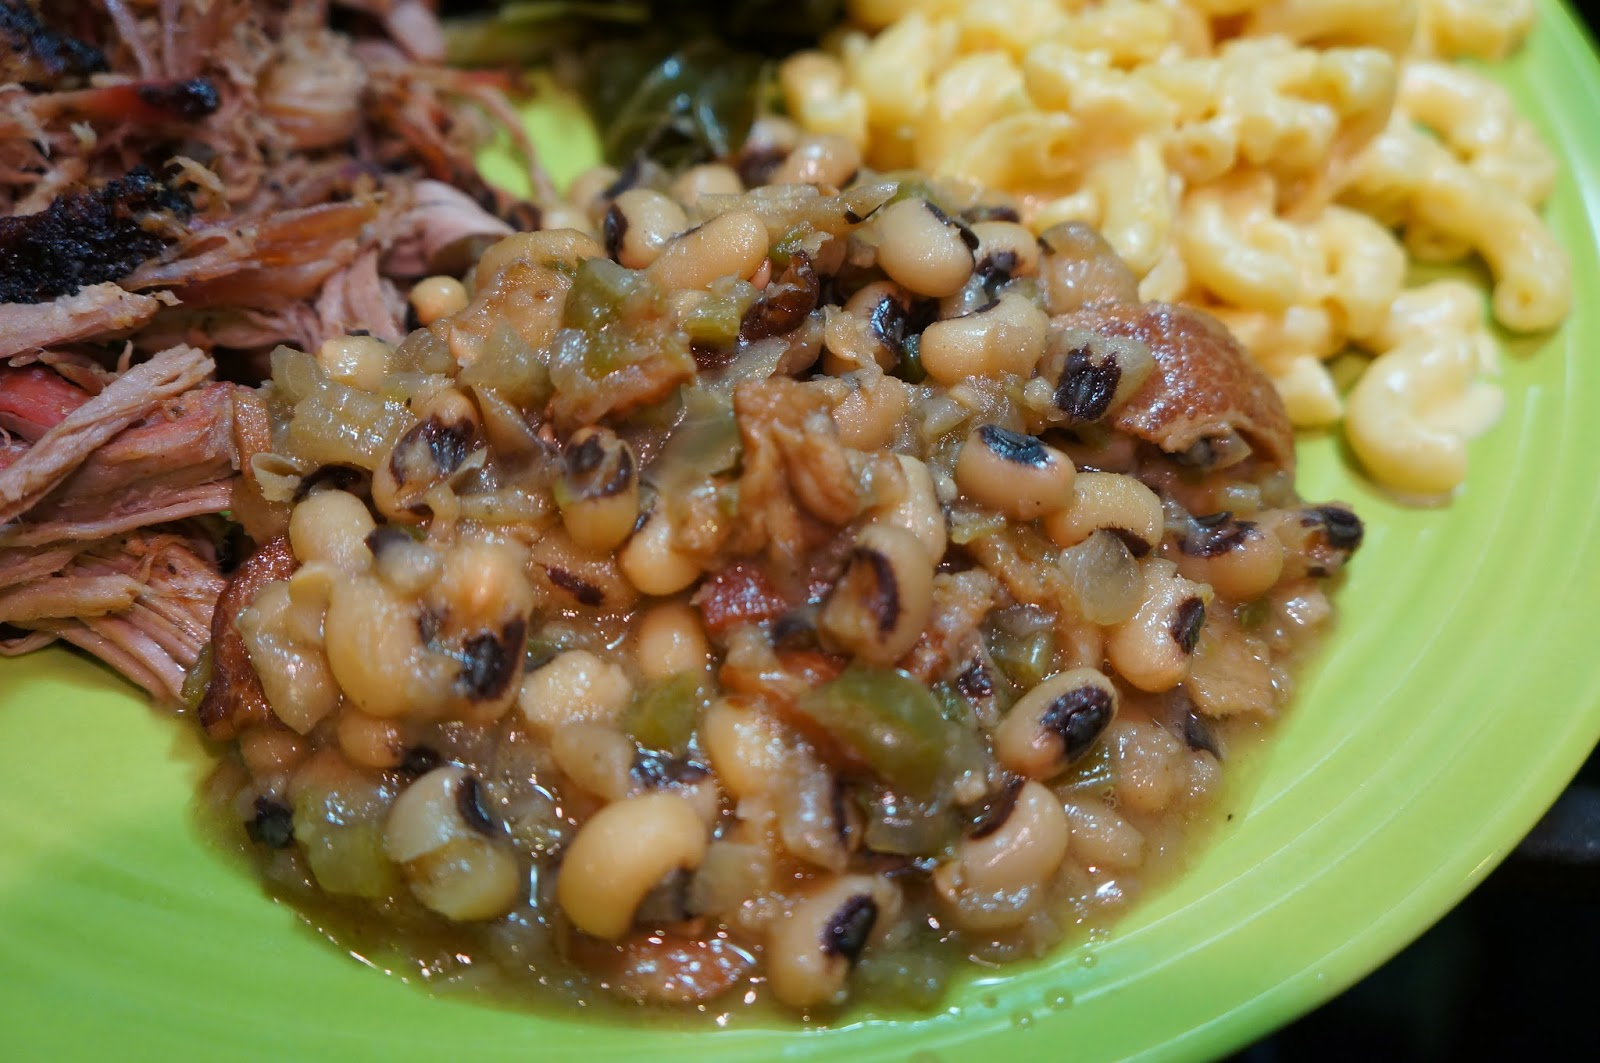 I try to make a plate of Southern food once every few months in order to satisfy my craving for my adopted homeland. While I ALWAYS make some collard greens ... & Cooking with SAHD: Southern Style Black-Eyed Peas